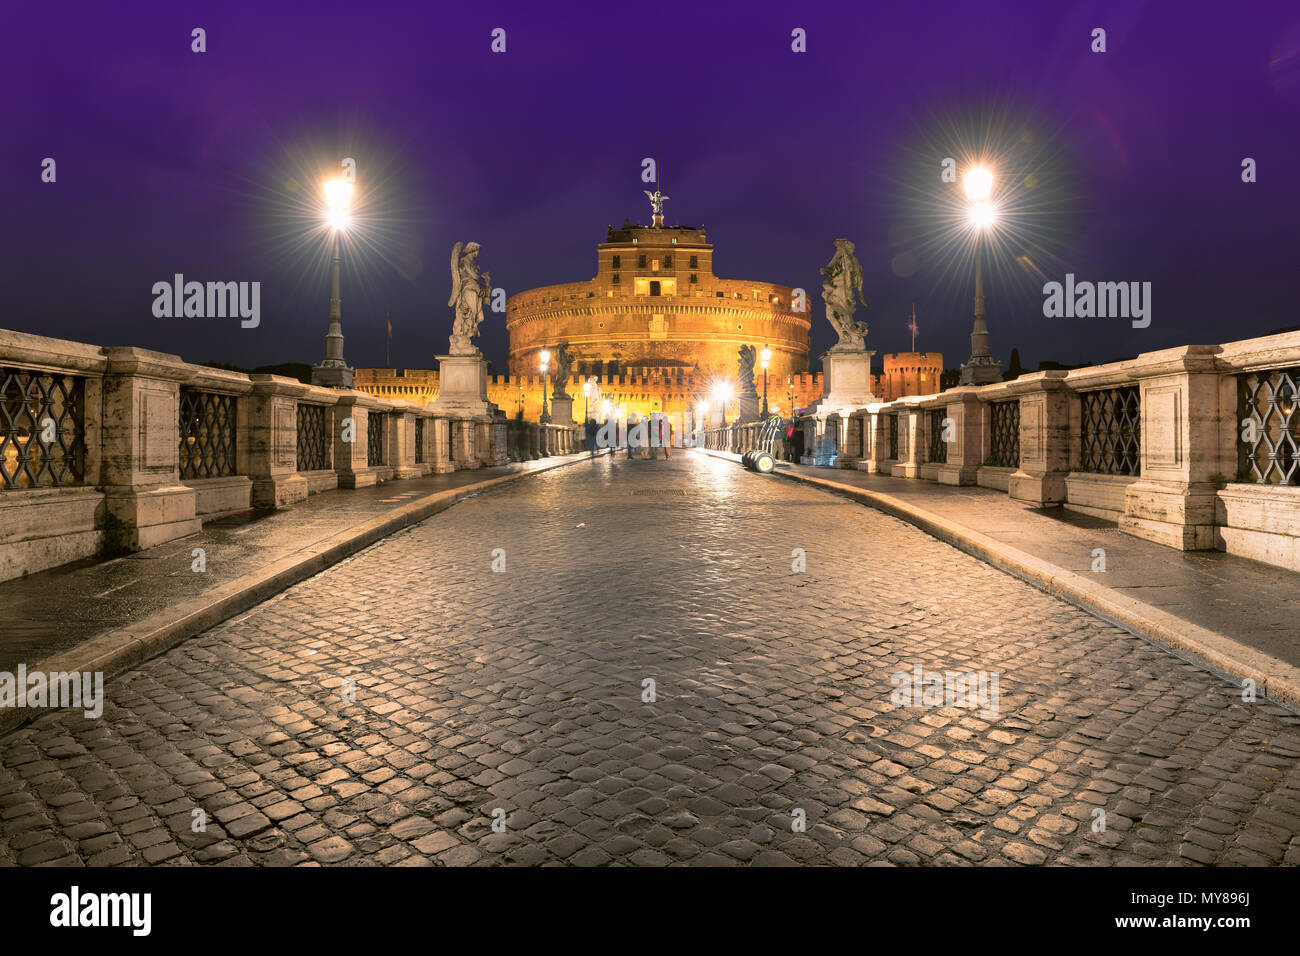 Saint Angel Castle and bridge at night in Rome, Italy. - Stock Image